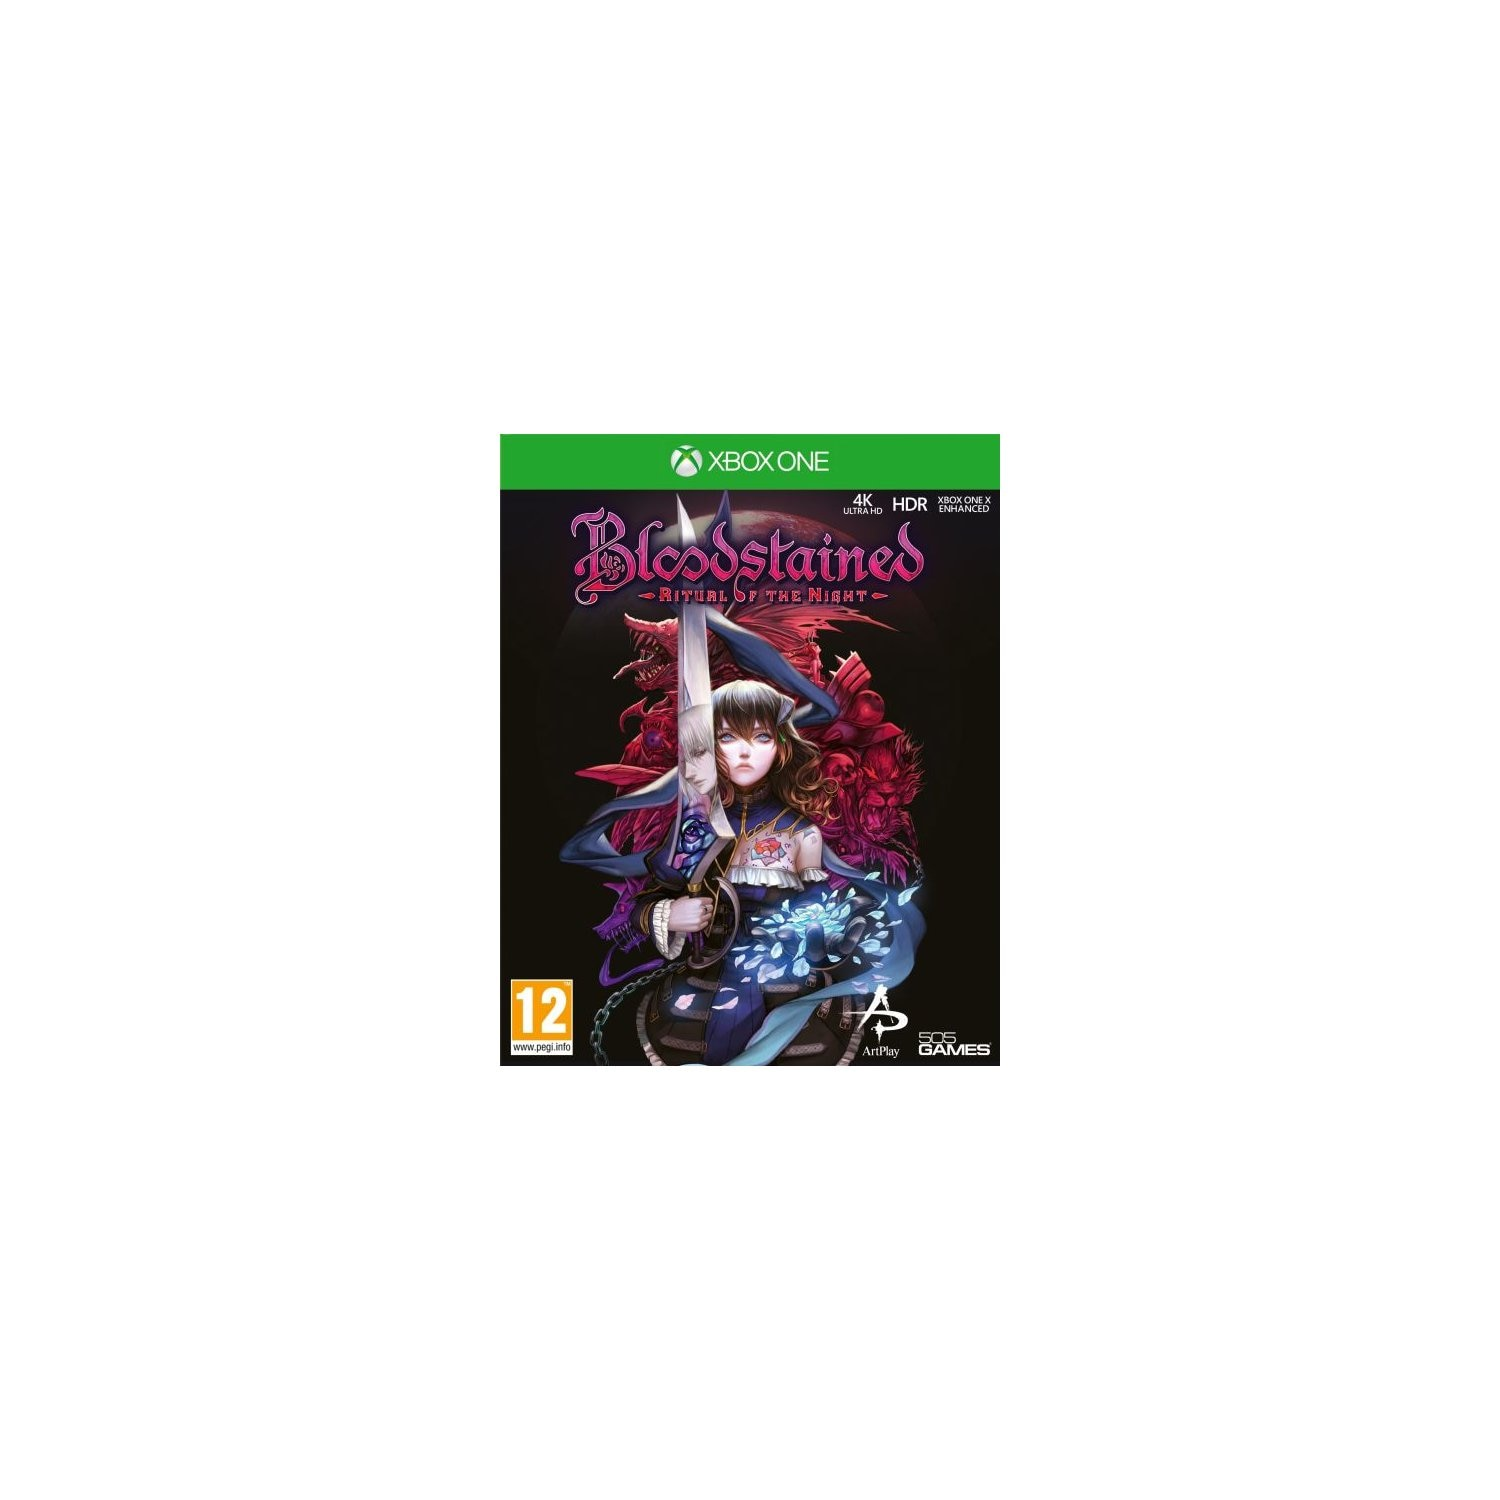 Gra Xbox One Bloodstained: Ritual of the Night